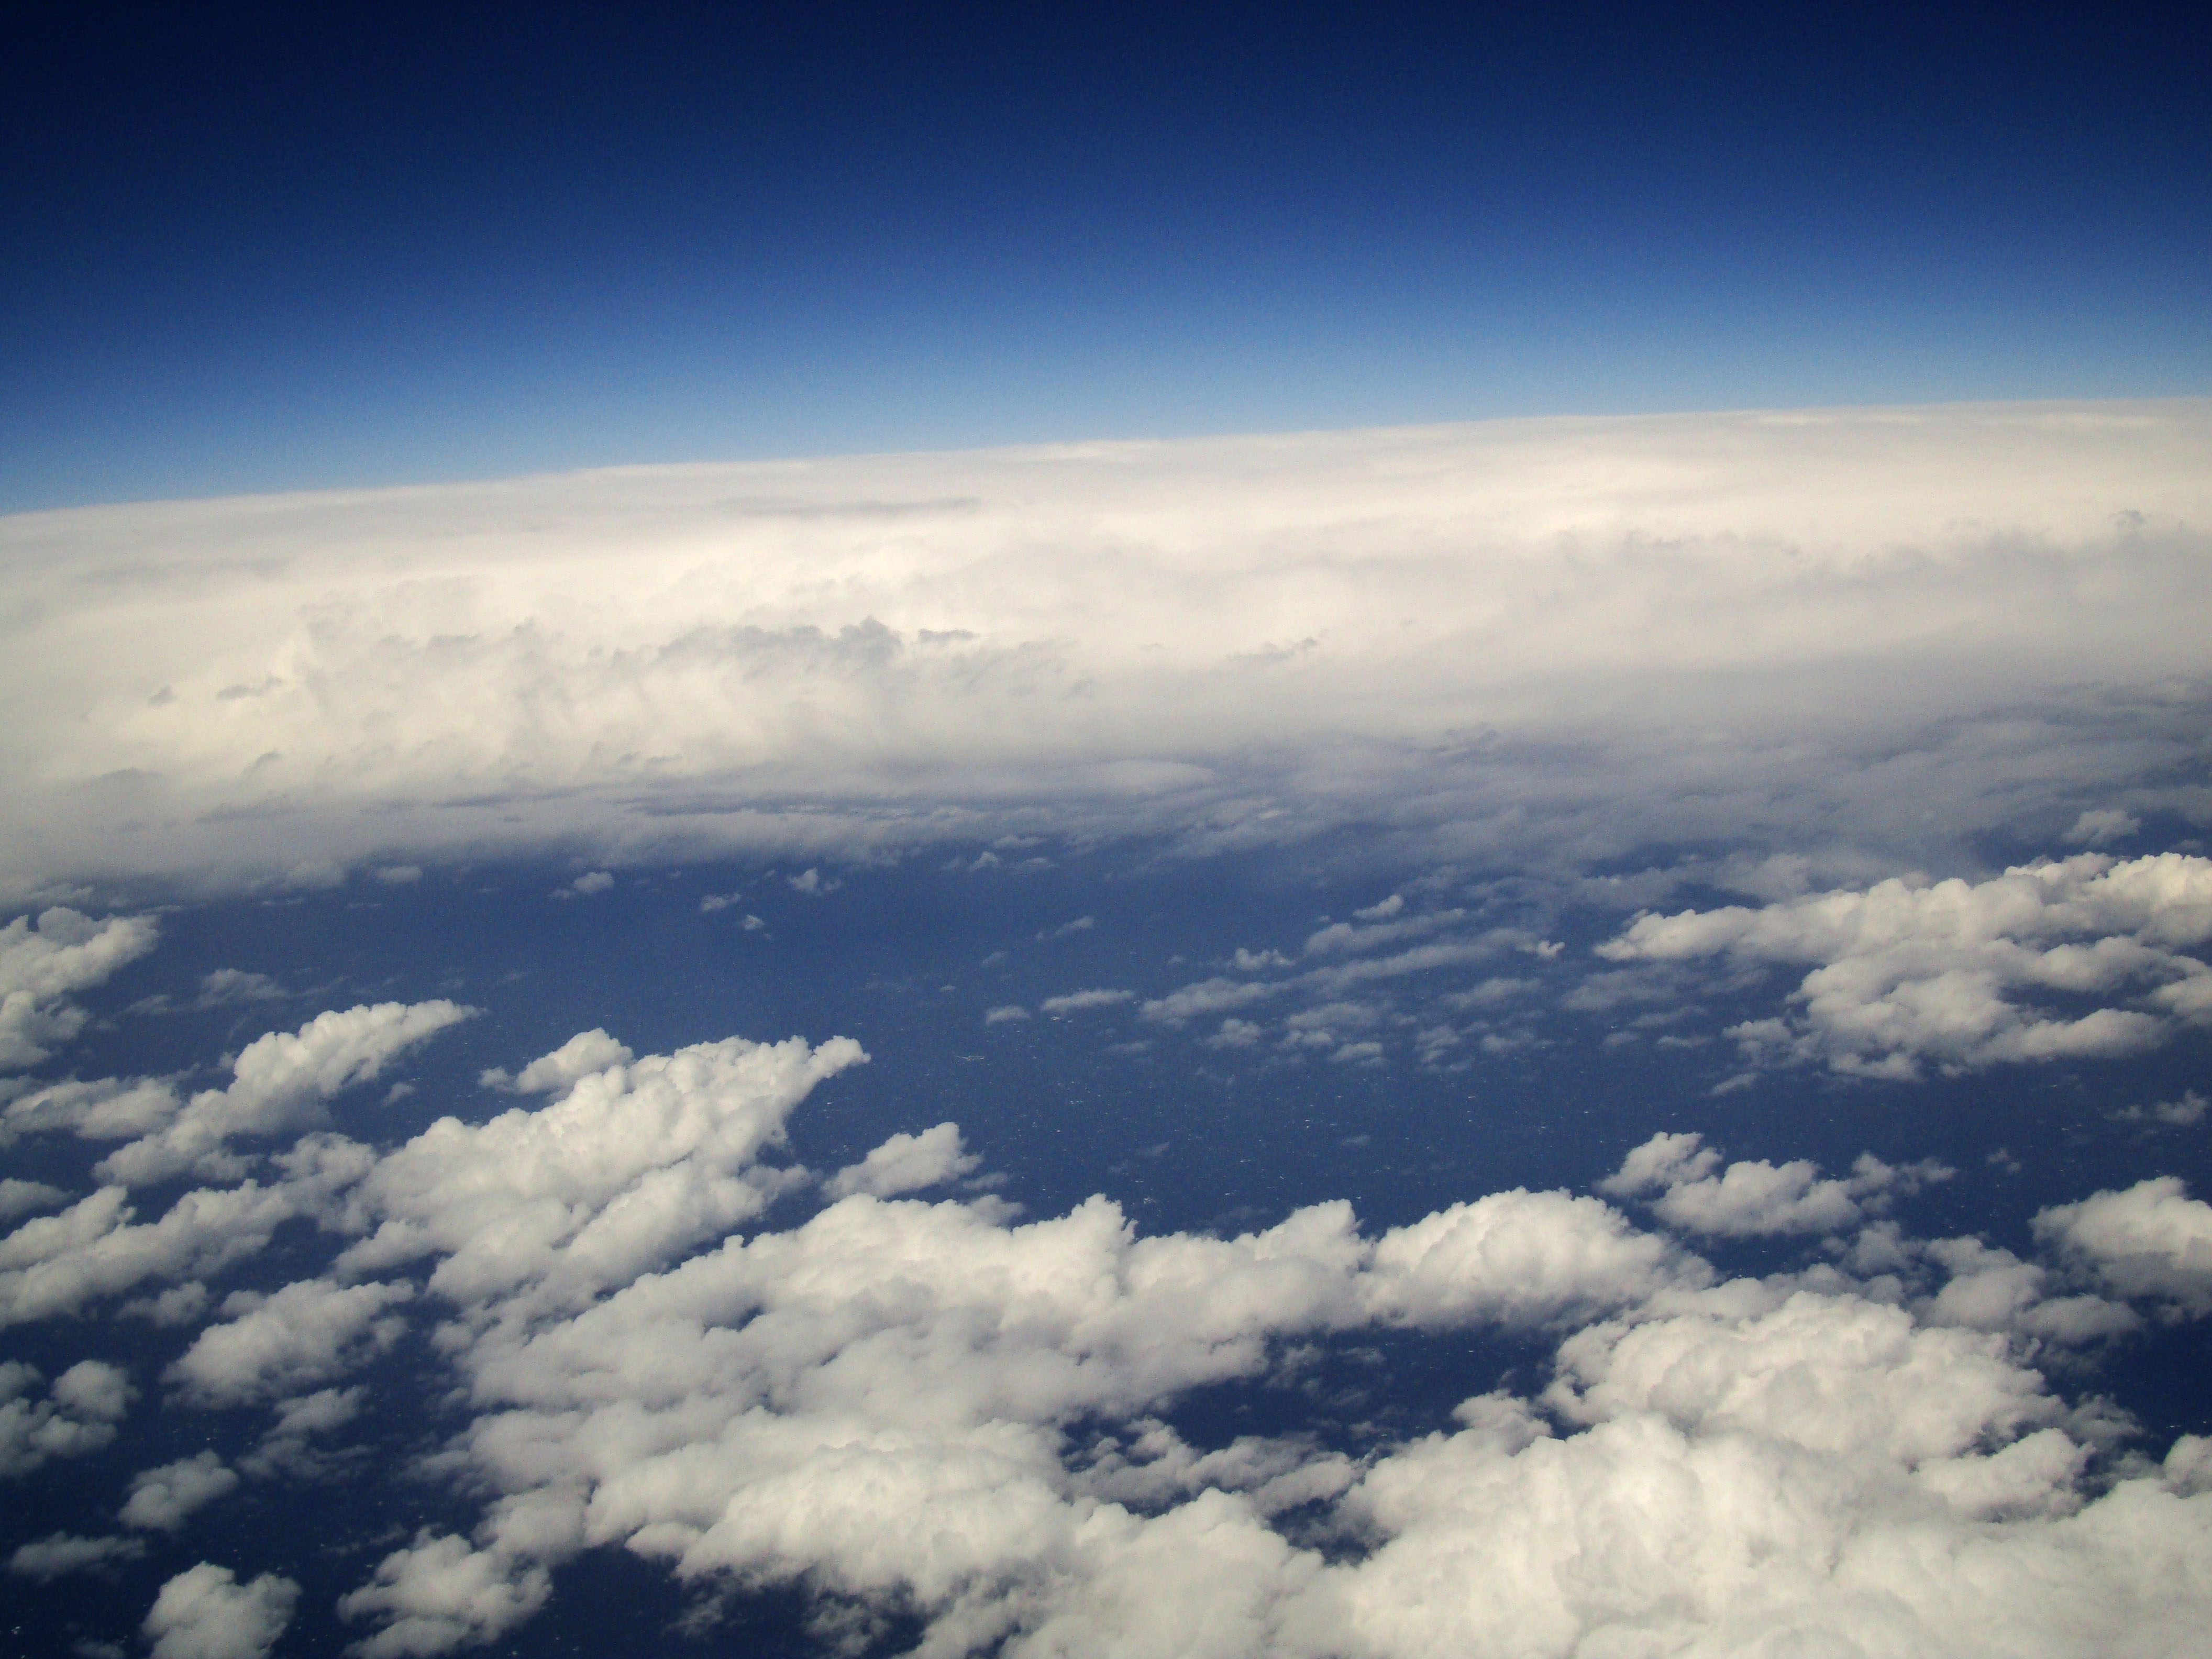 Textures Clouds Formations Sky Storms Weather Phenomena Aerial Views 22